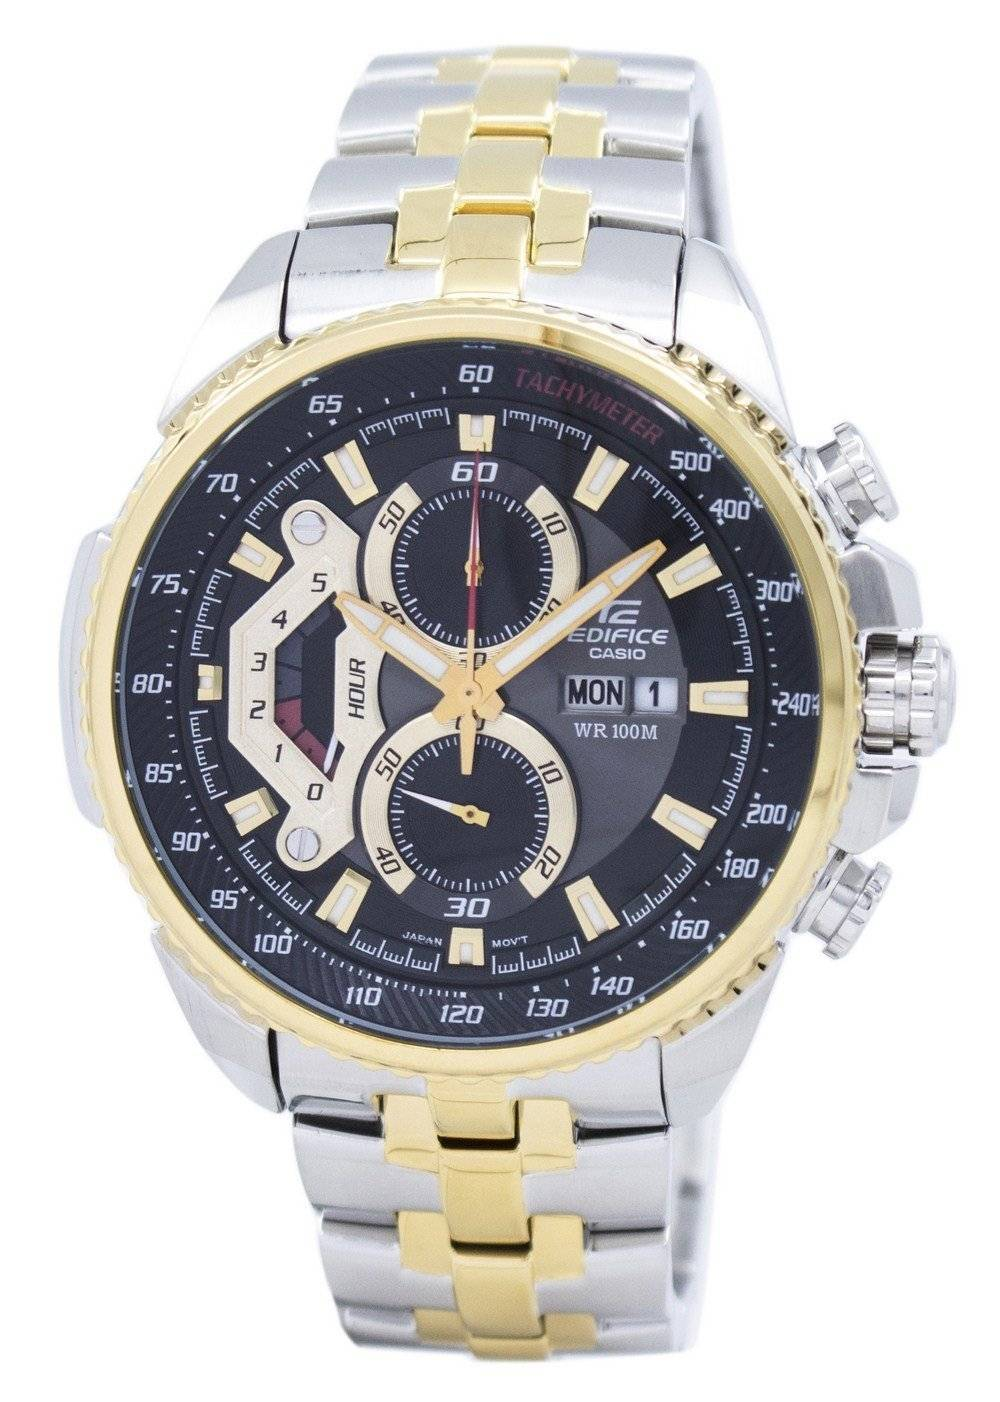 13886bb163b Details about Casio Edifice Chronograph Tachymeter EF-558SG-1AV Mens Watch